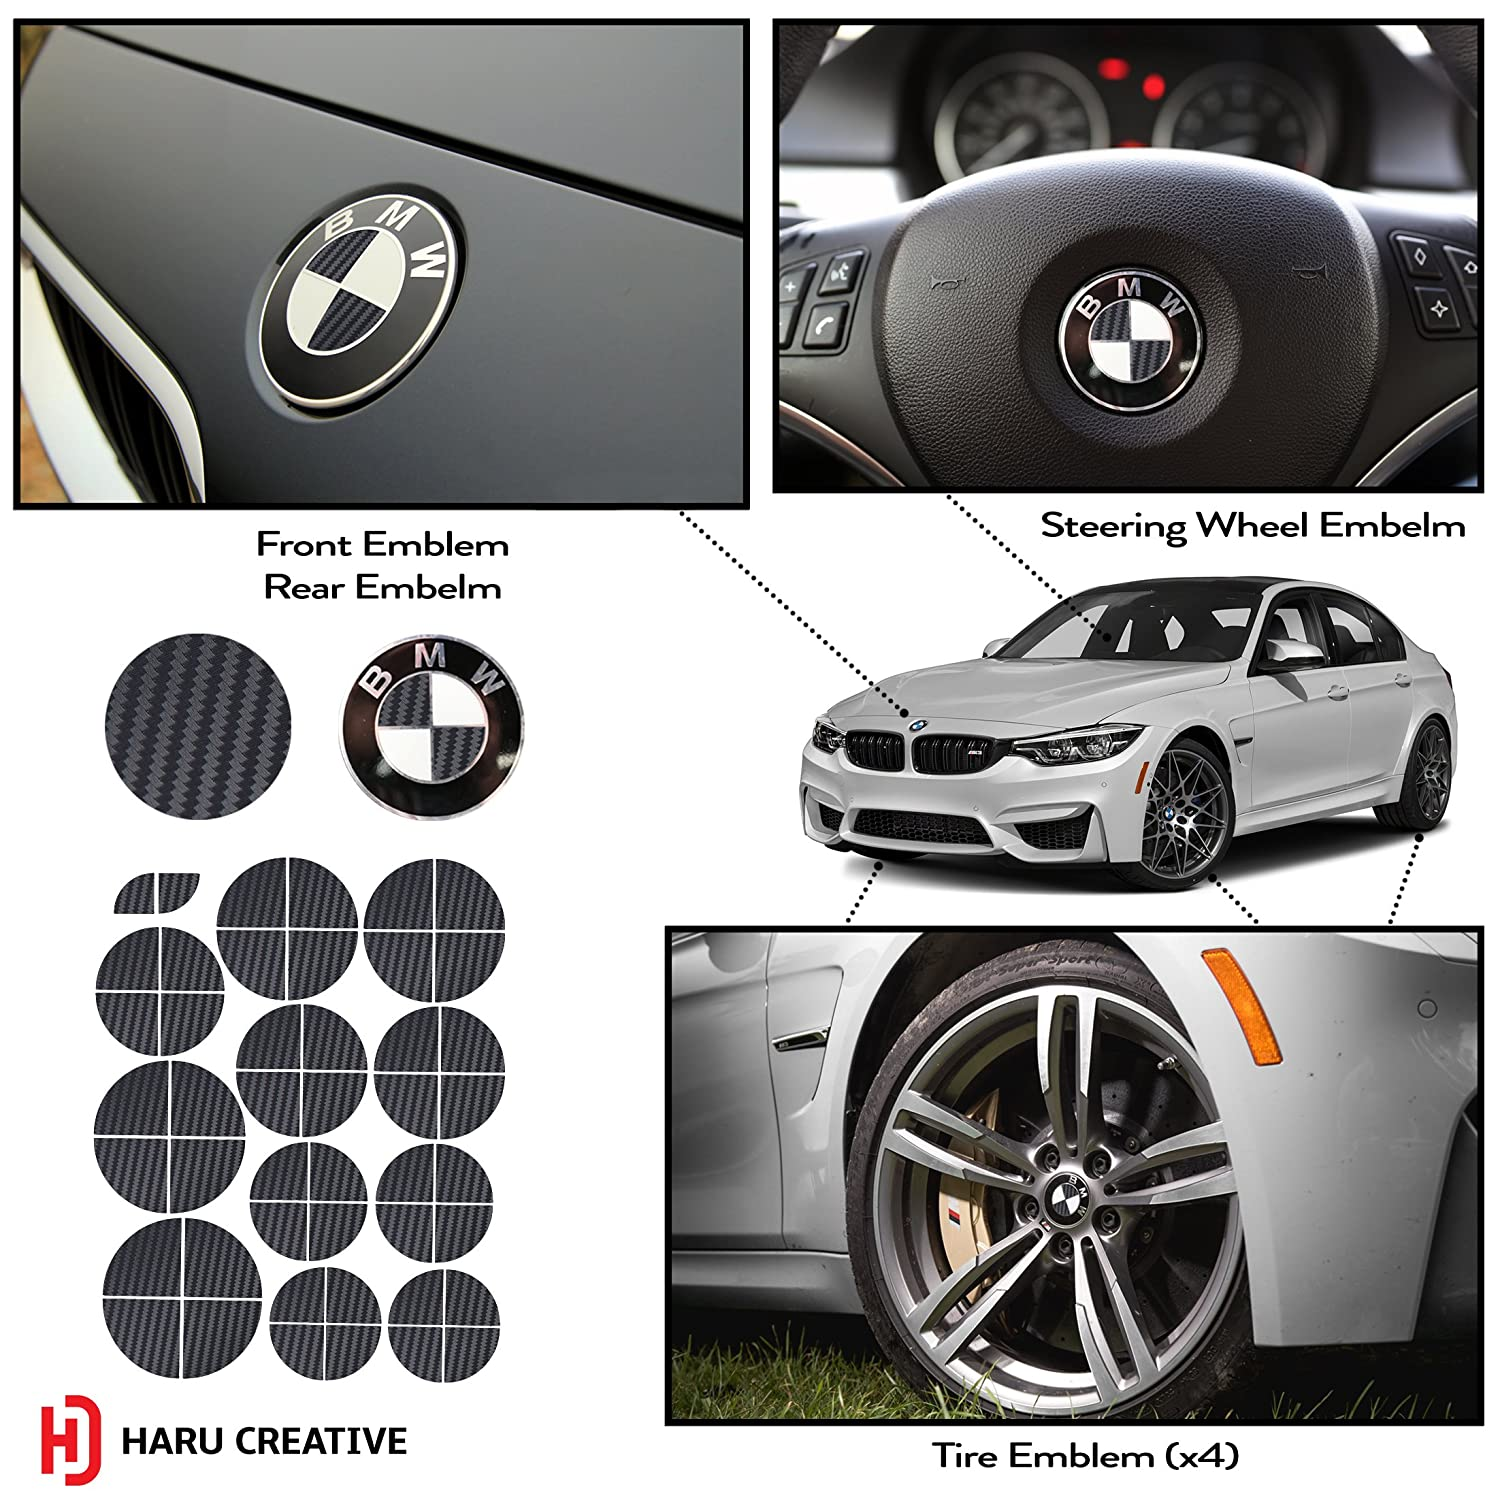 Haru creative vinyl overlay aftermarket decal sticker compatible with and fits all bmw emblem caps for hood trunk wheel fender emblem not included